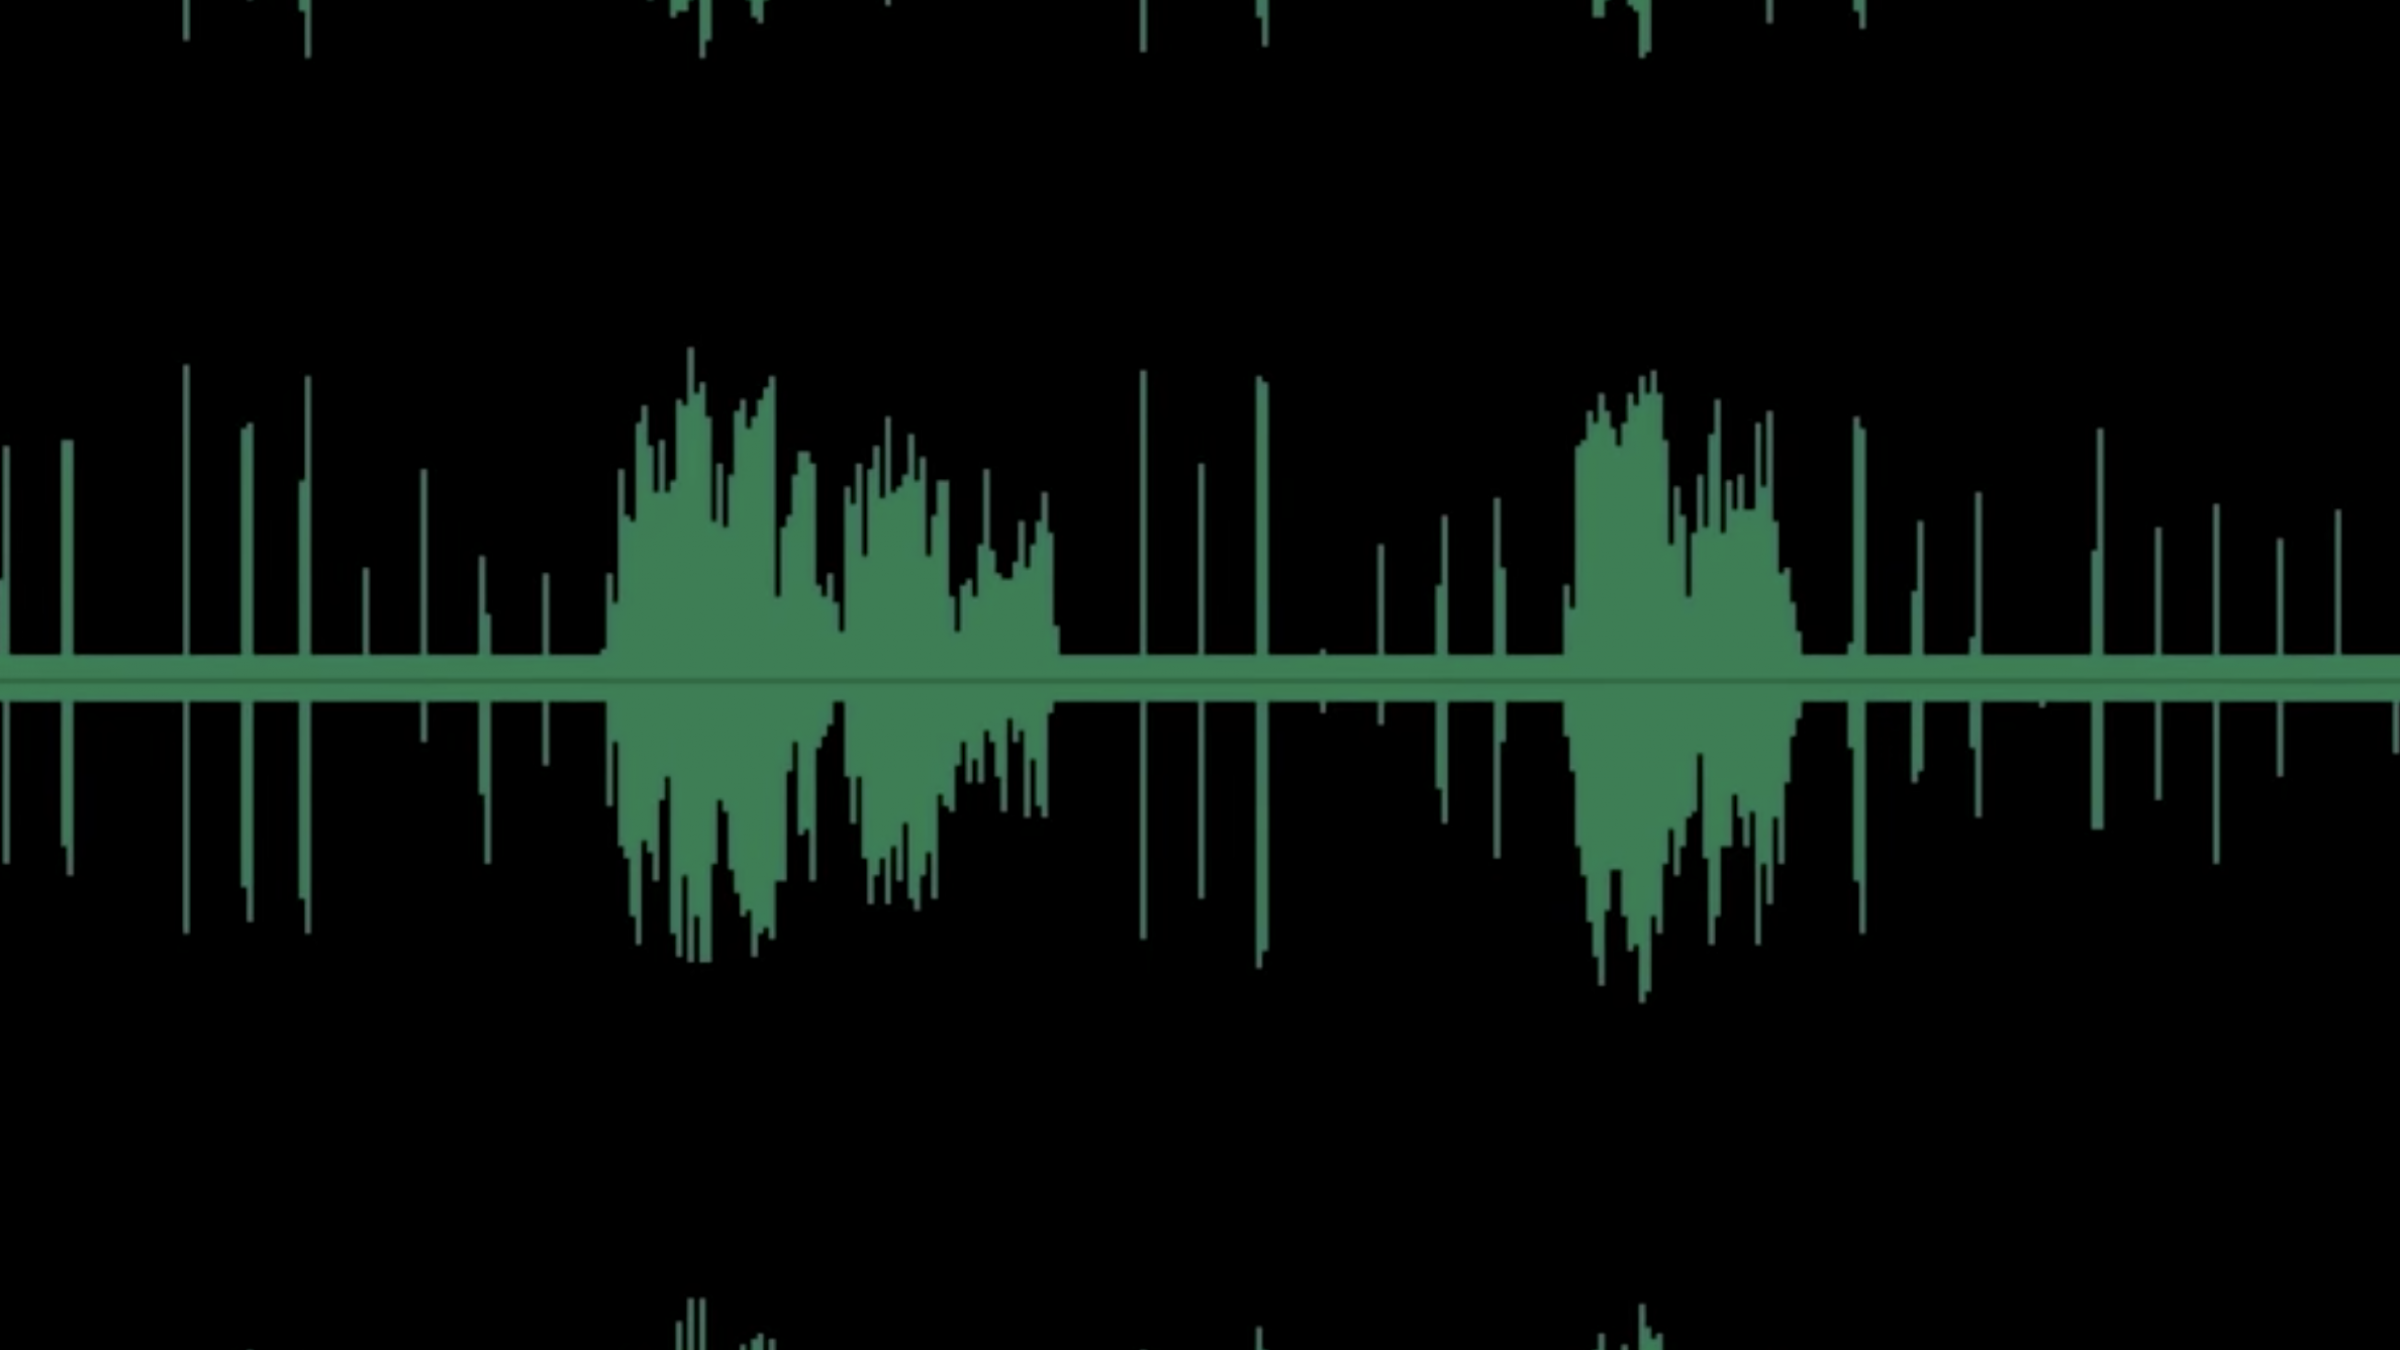 This Super Quick Trick Results in a Great Audio Transition